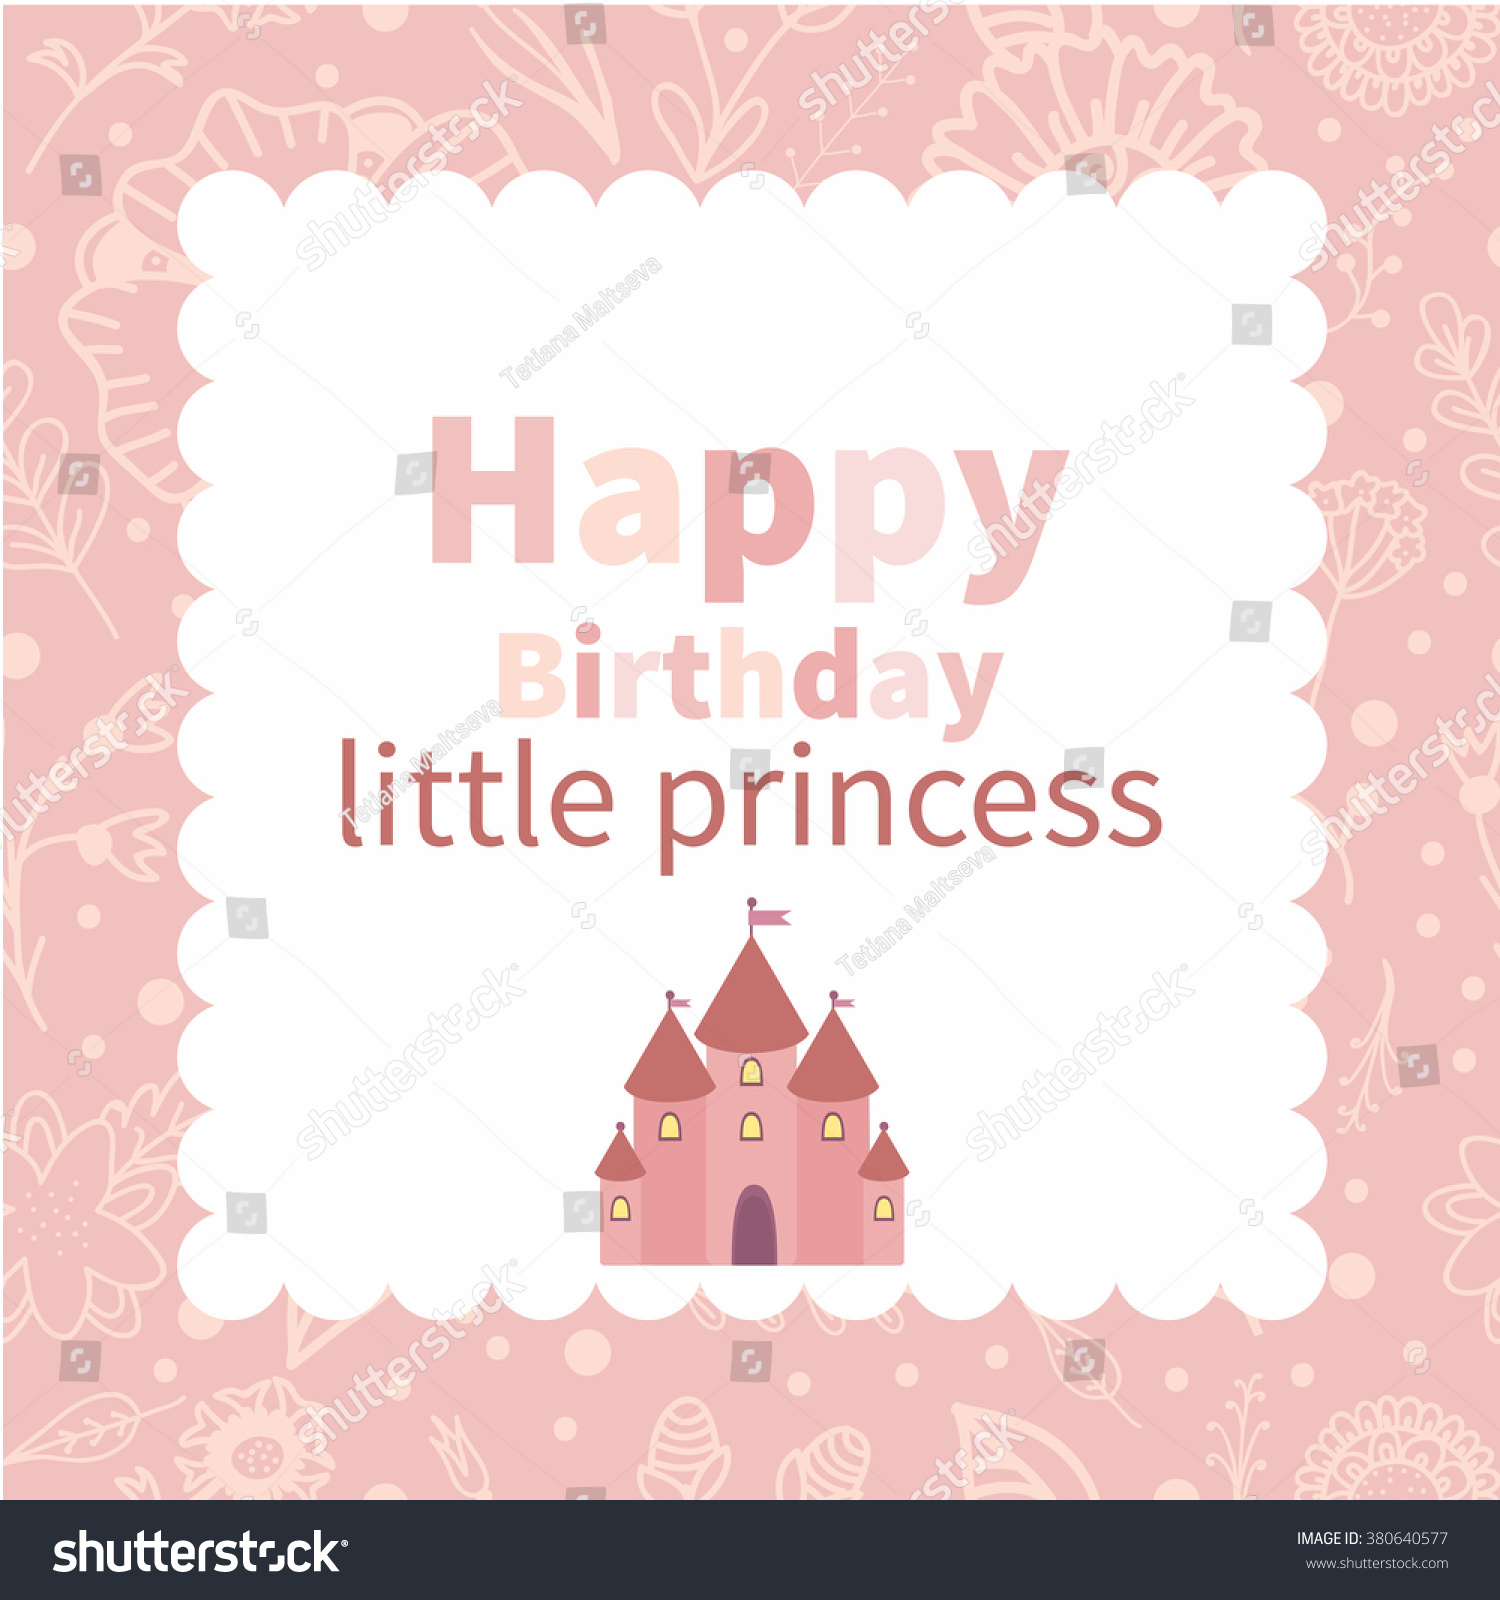 Happy Birthday Little Princess Birthday Card Stock Vector